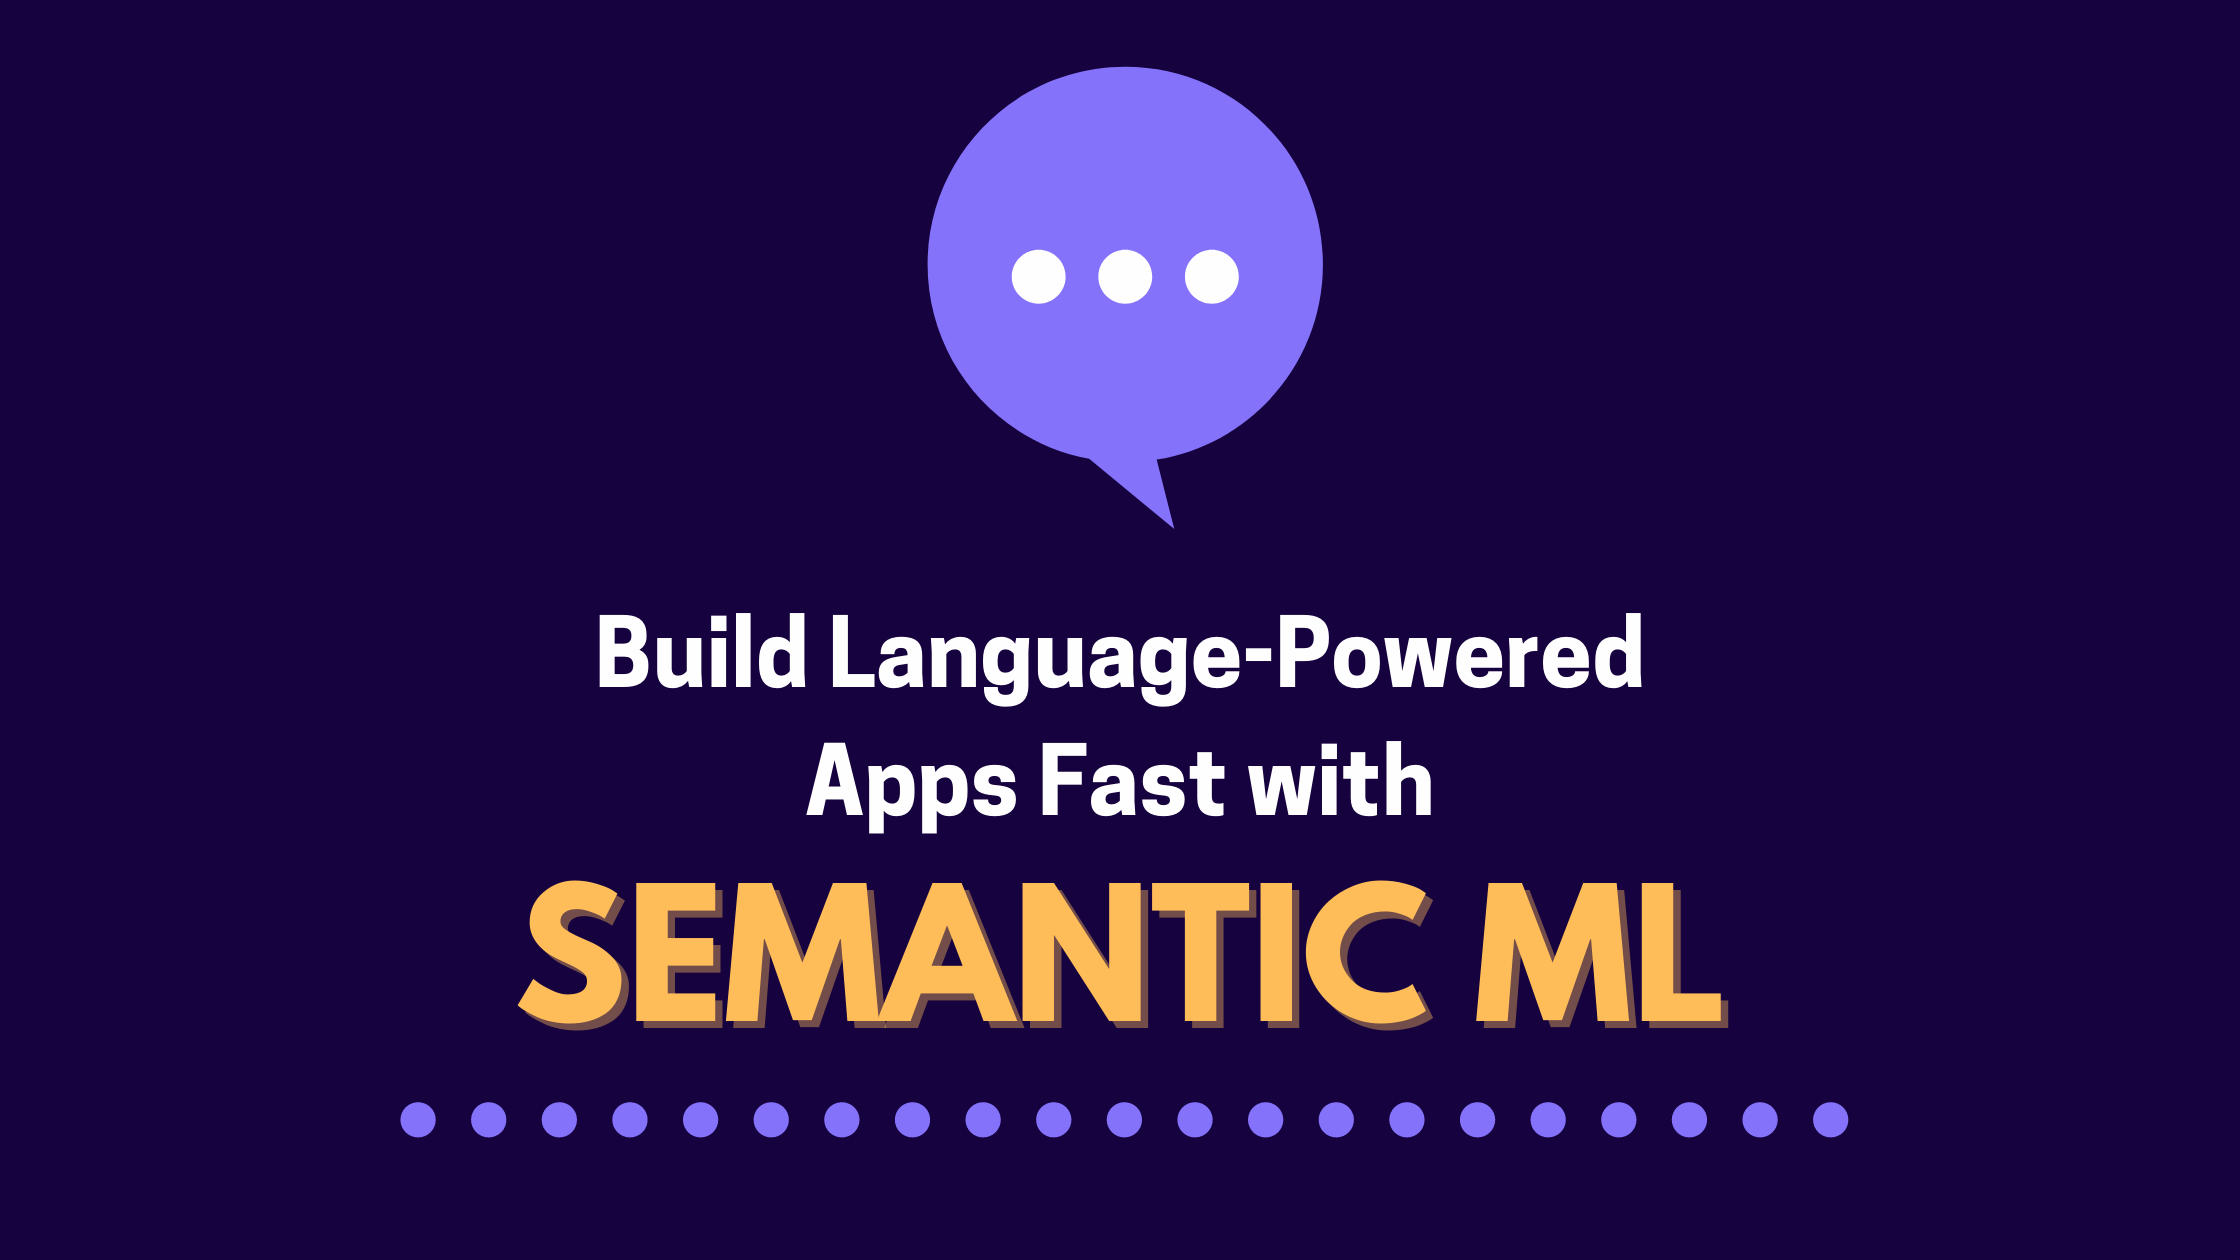 Build Apps Powered by Language with Semantic ML